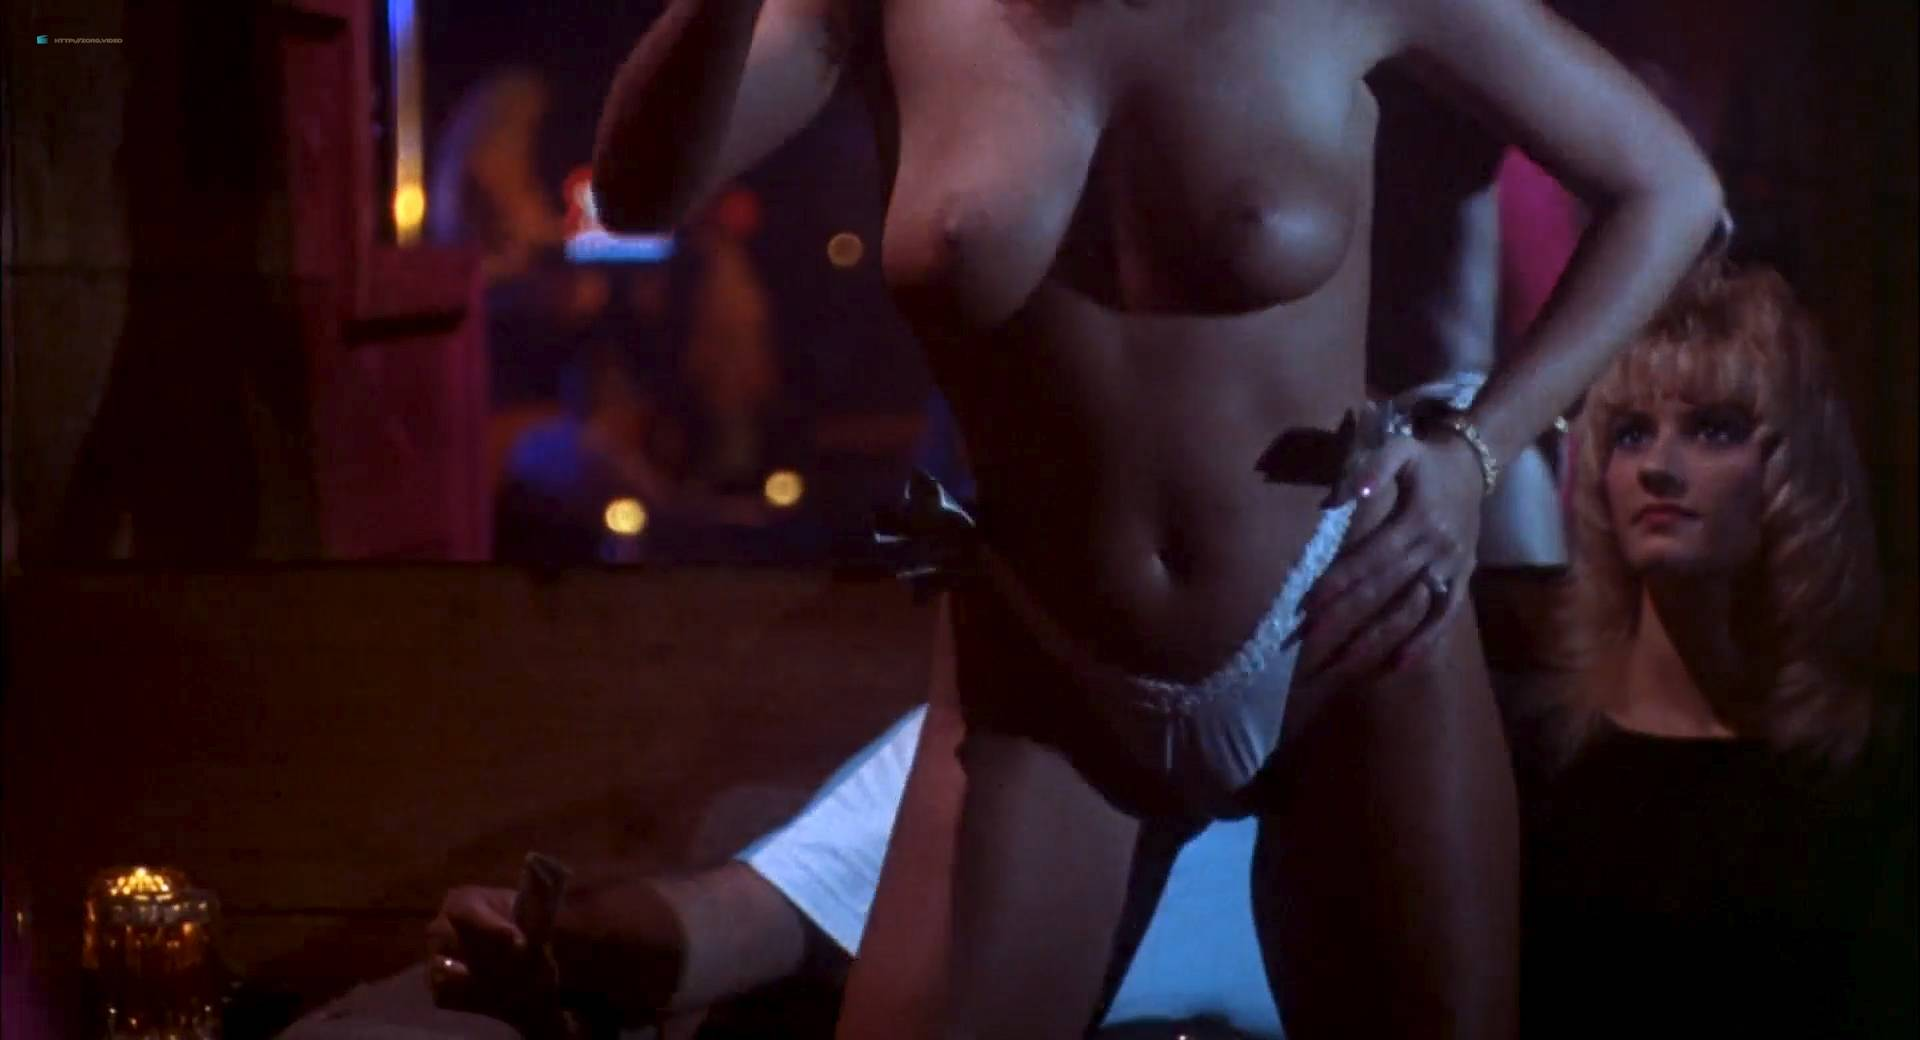 from Brayden jennifer connelly naked butt